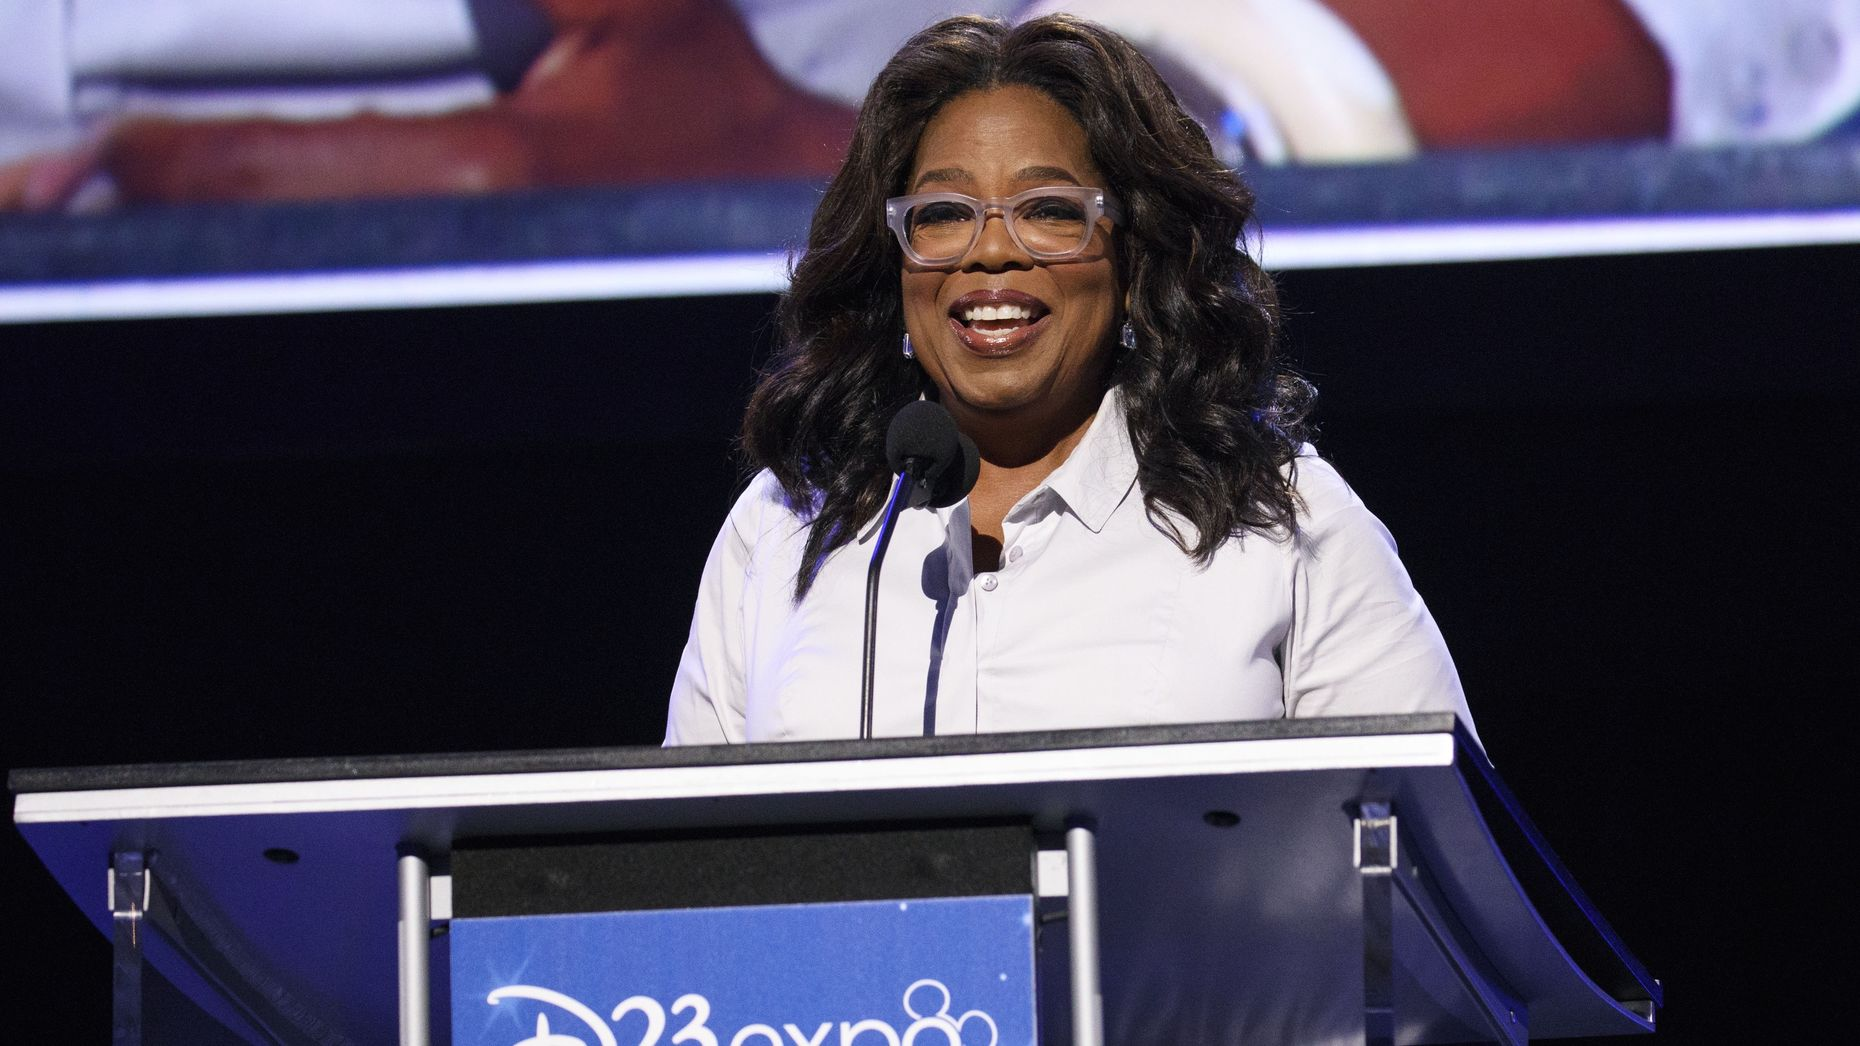 Oprah Winfrey, who has agreed to produce shows for Apple. Photo by Bloomberg.